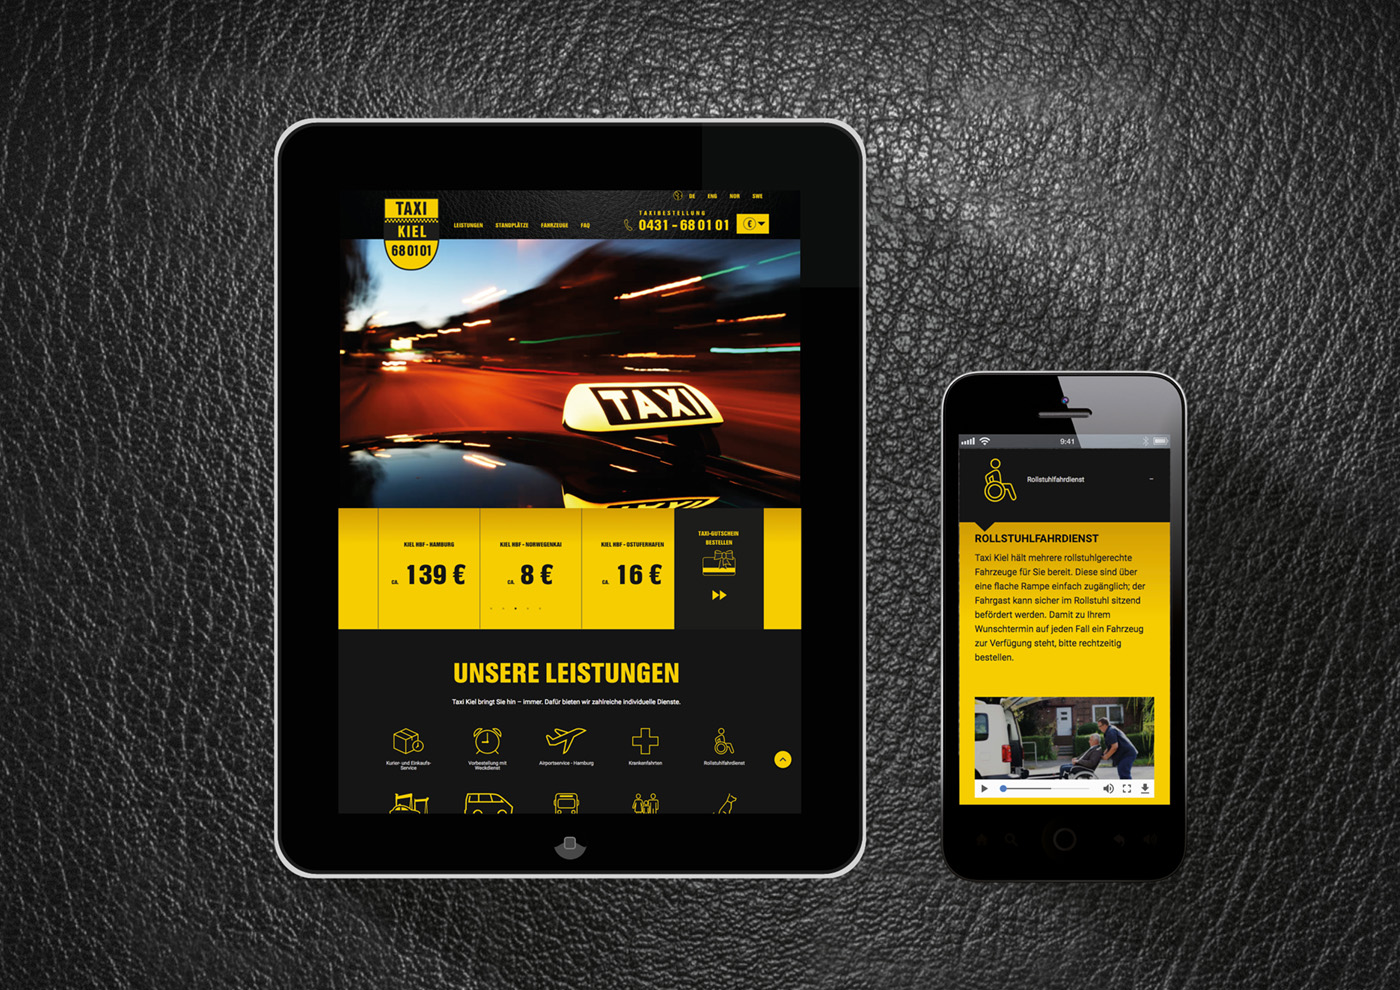 Web-Relaunch und Corporate Design für Taxi Kiel: Internet